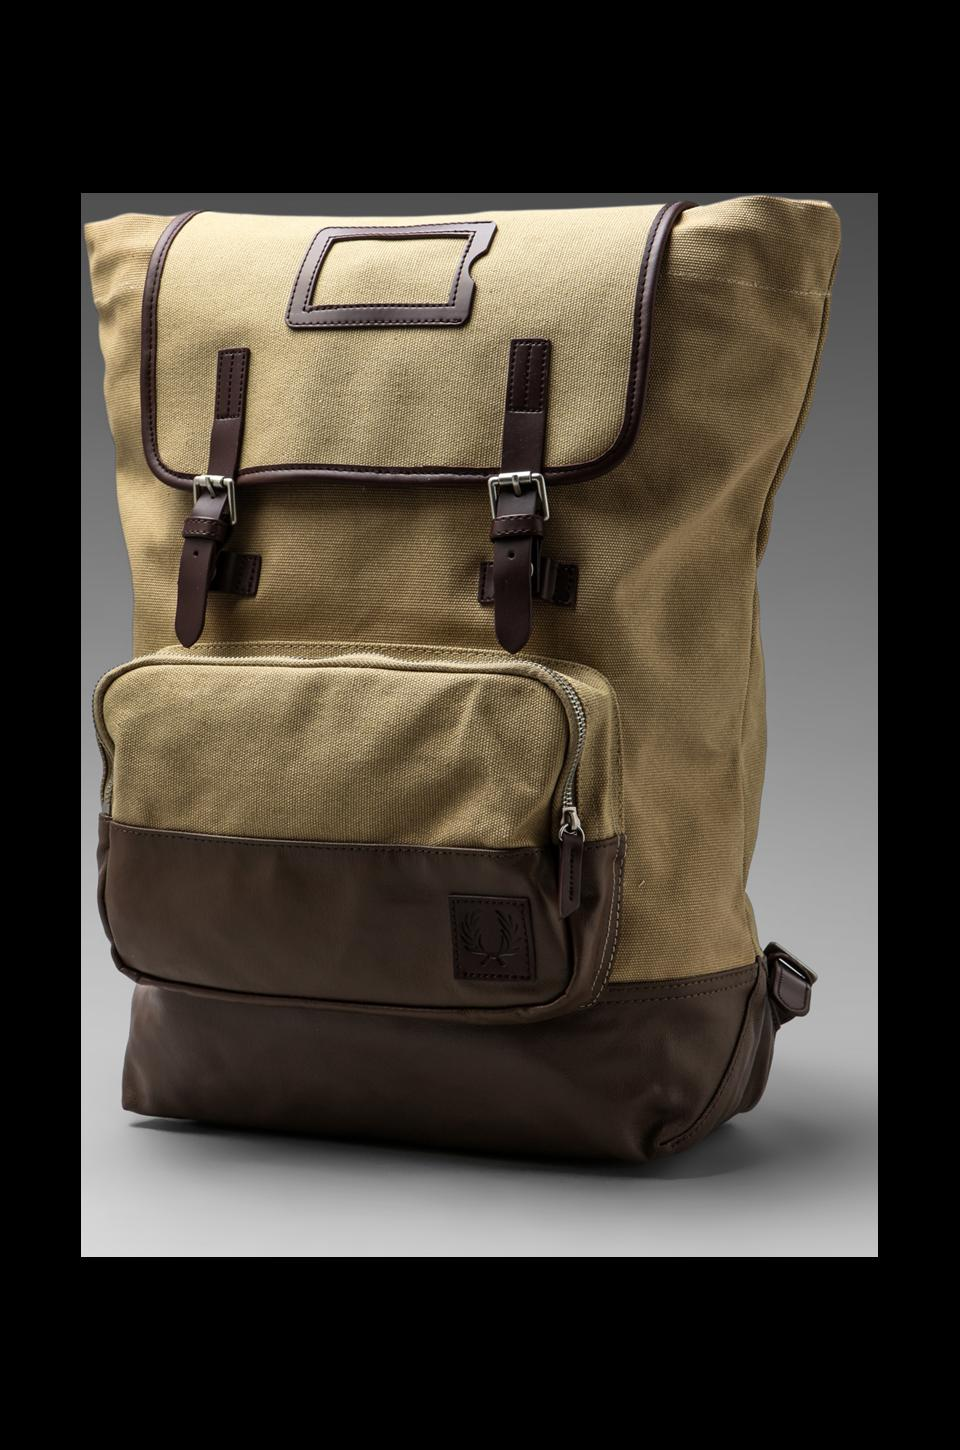 Fred Perry Cotton Rucksack in Warm Stone